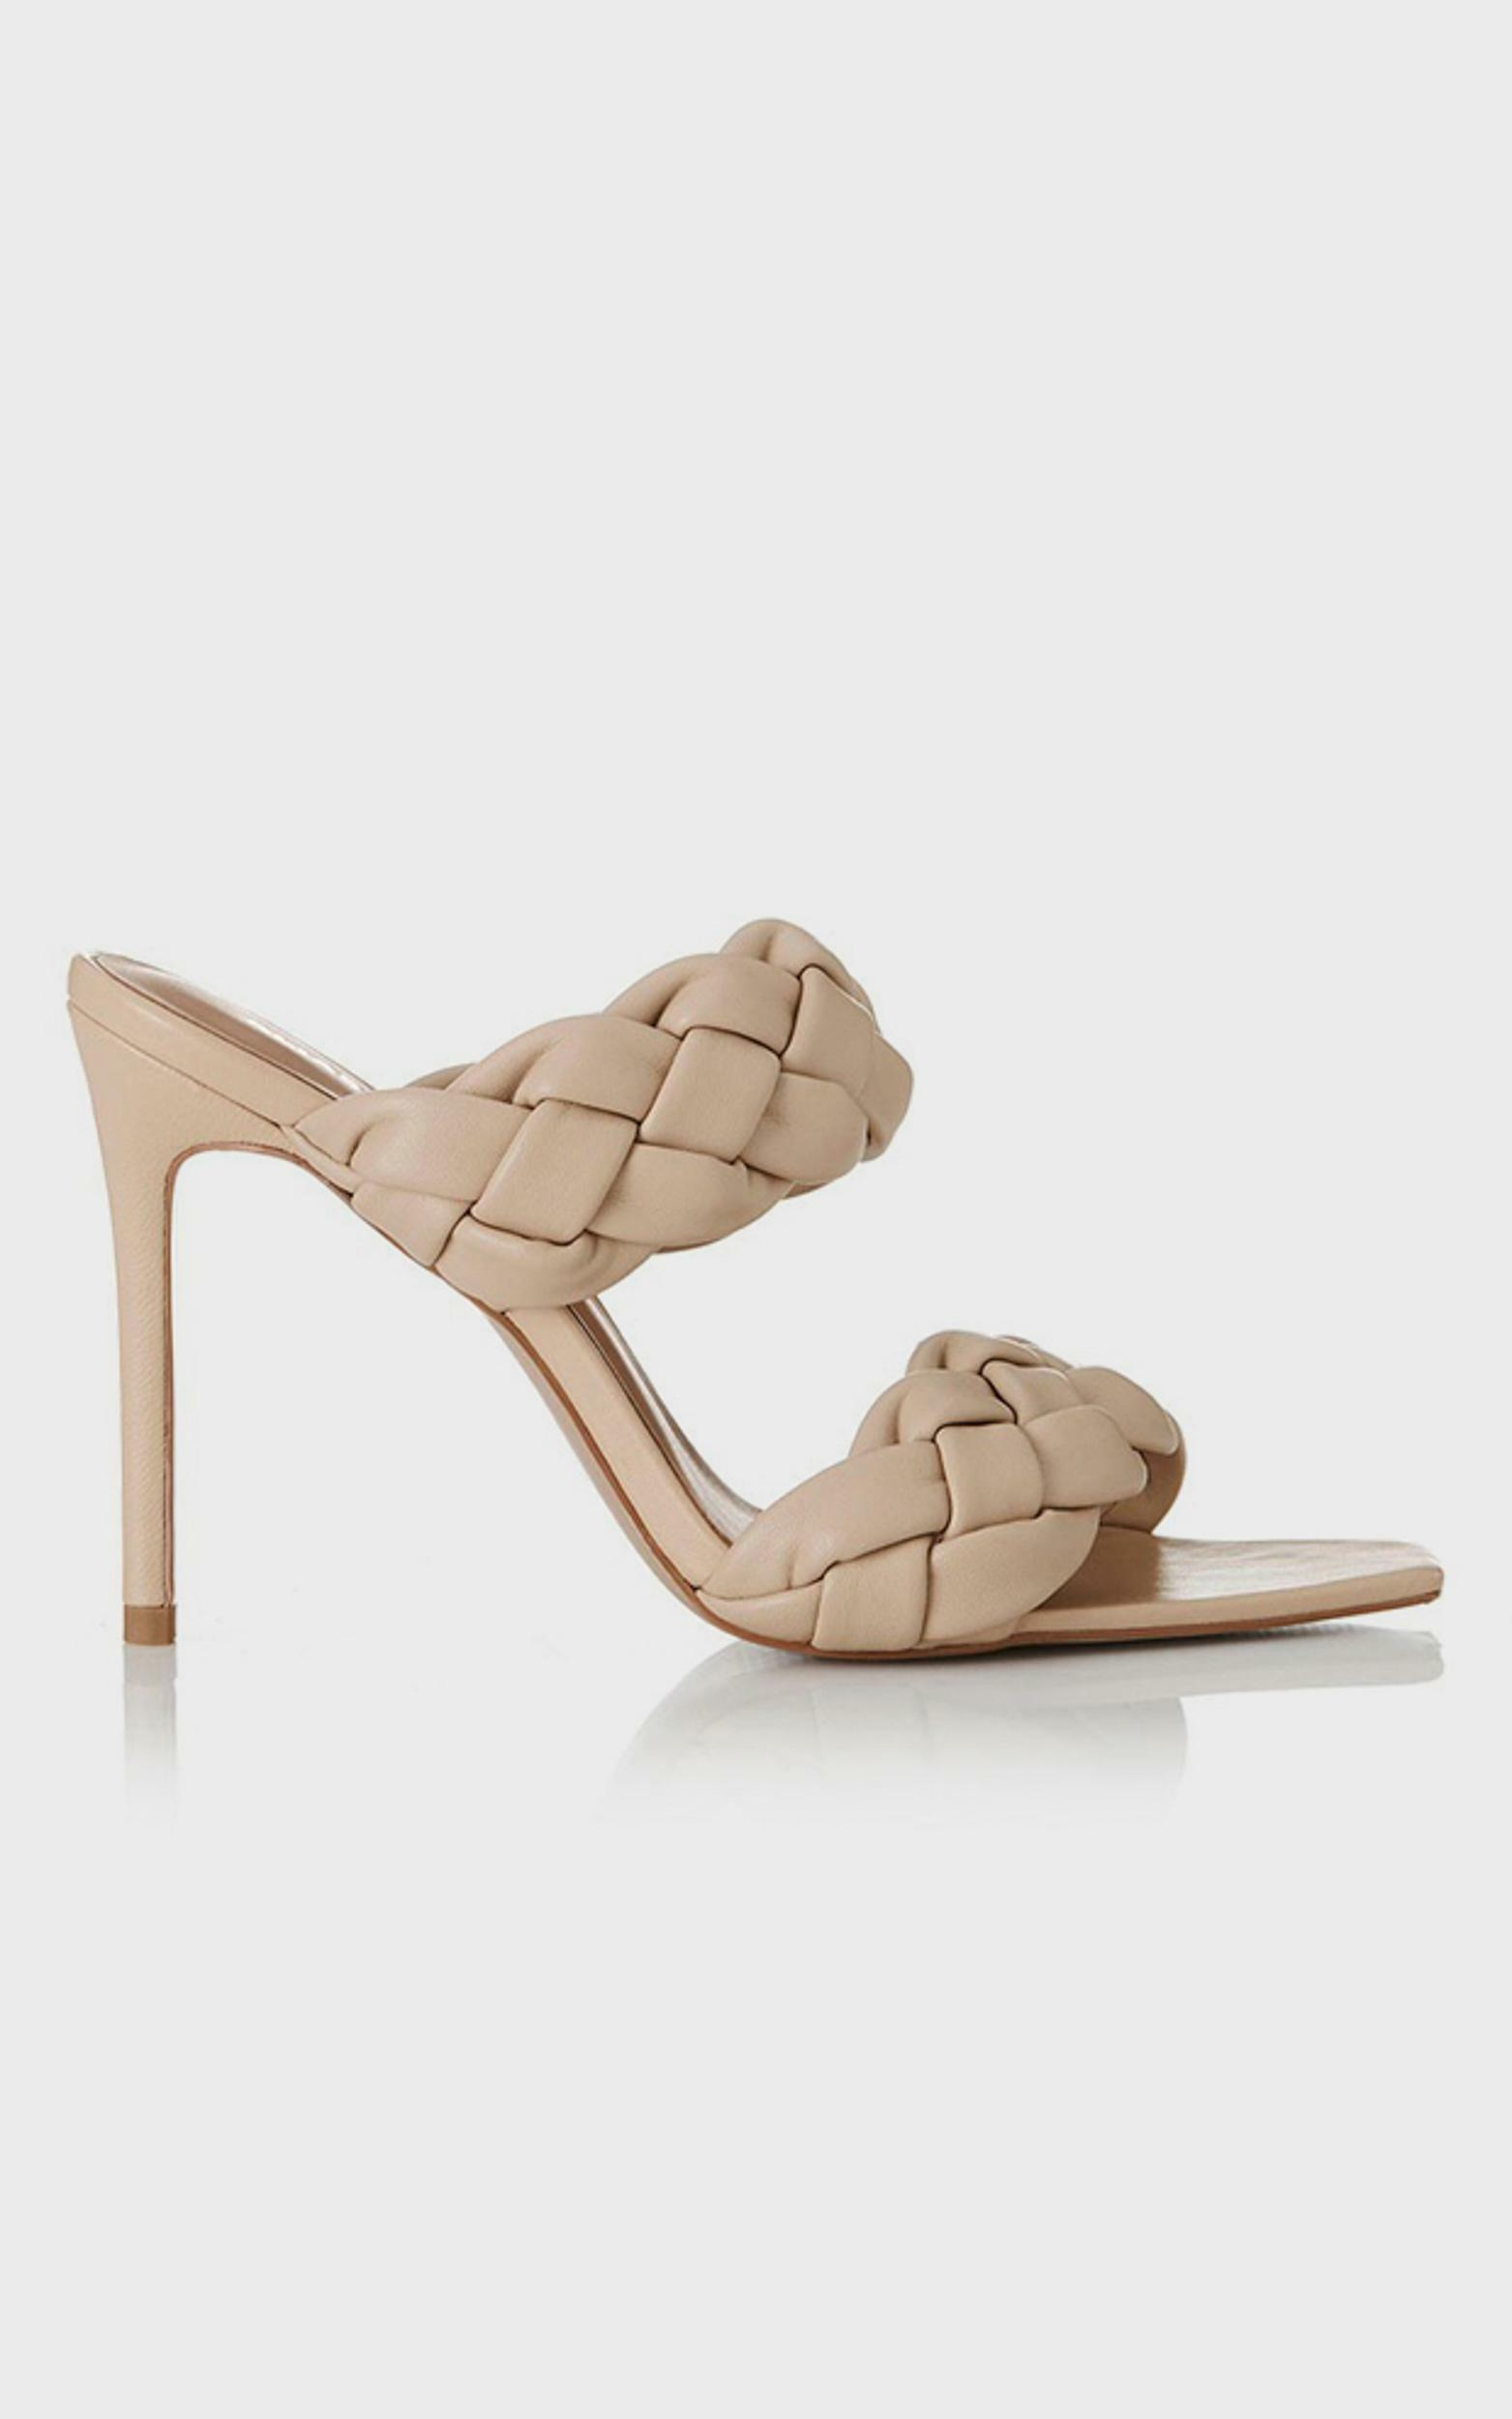 Alias Mae - Isla Heel in Natural Smooth - 10.5, CRE1, hi-res image number null